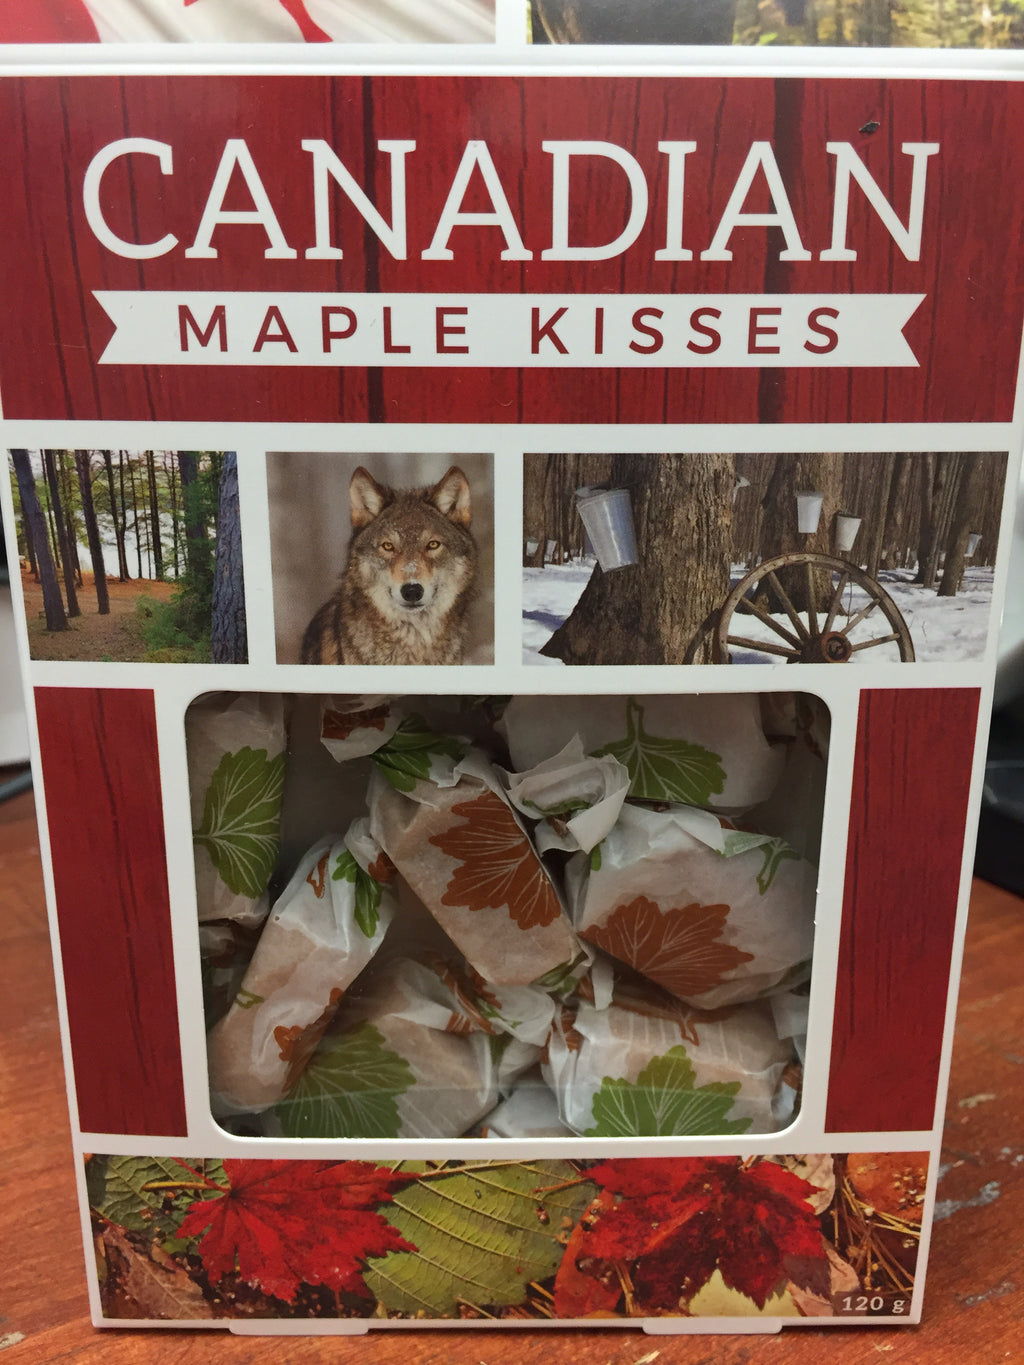 Canadian Maple Kisses